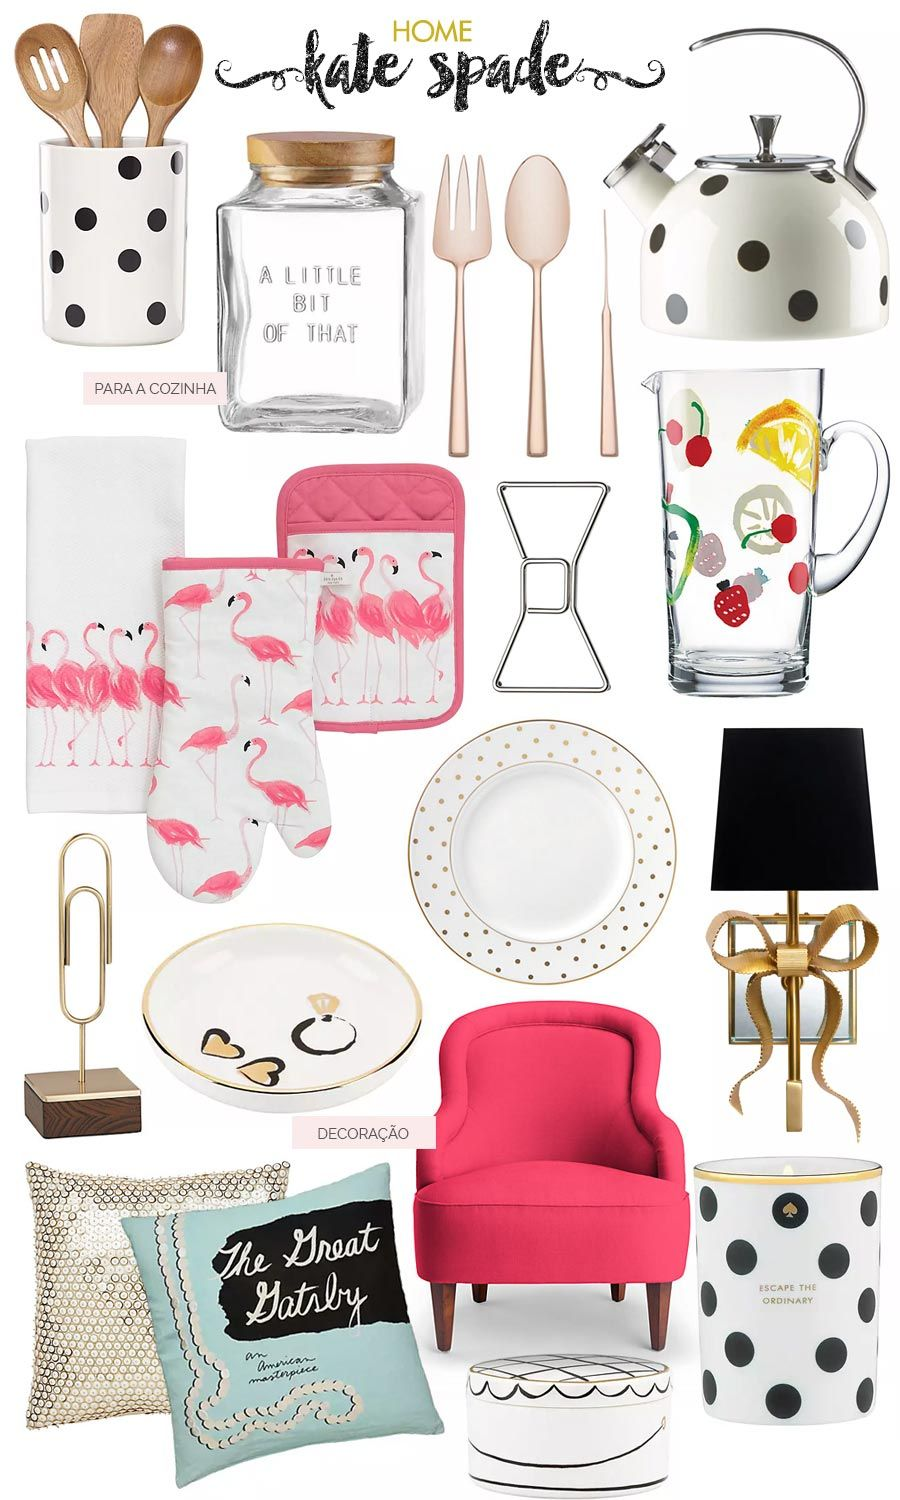 Kate Spade Kitchen Anthony Bourdain Confidential Decoracao Home Cute Nest Decor Decoration Plates Bowtie Paper Clips Polka Dot Tea Kettle Gold Spoon And Forks Sparkly Pillow Flamingos